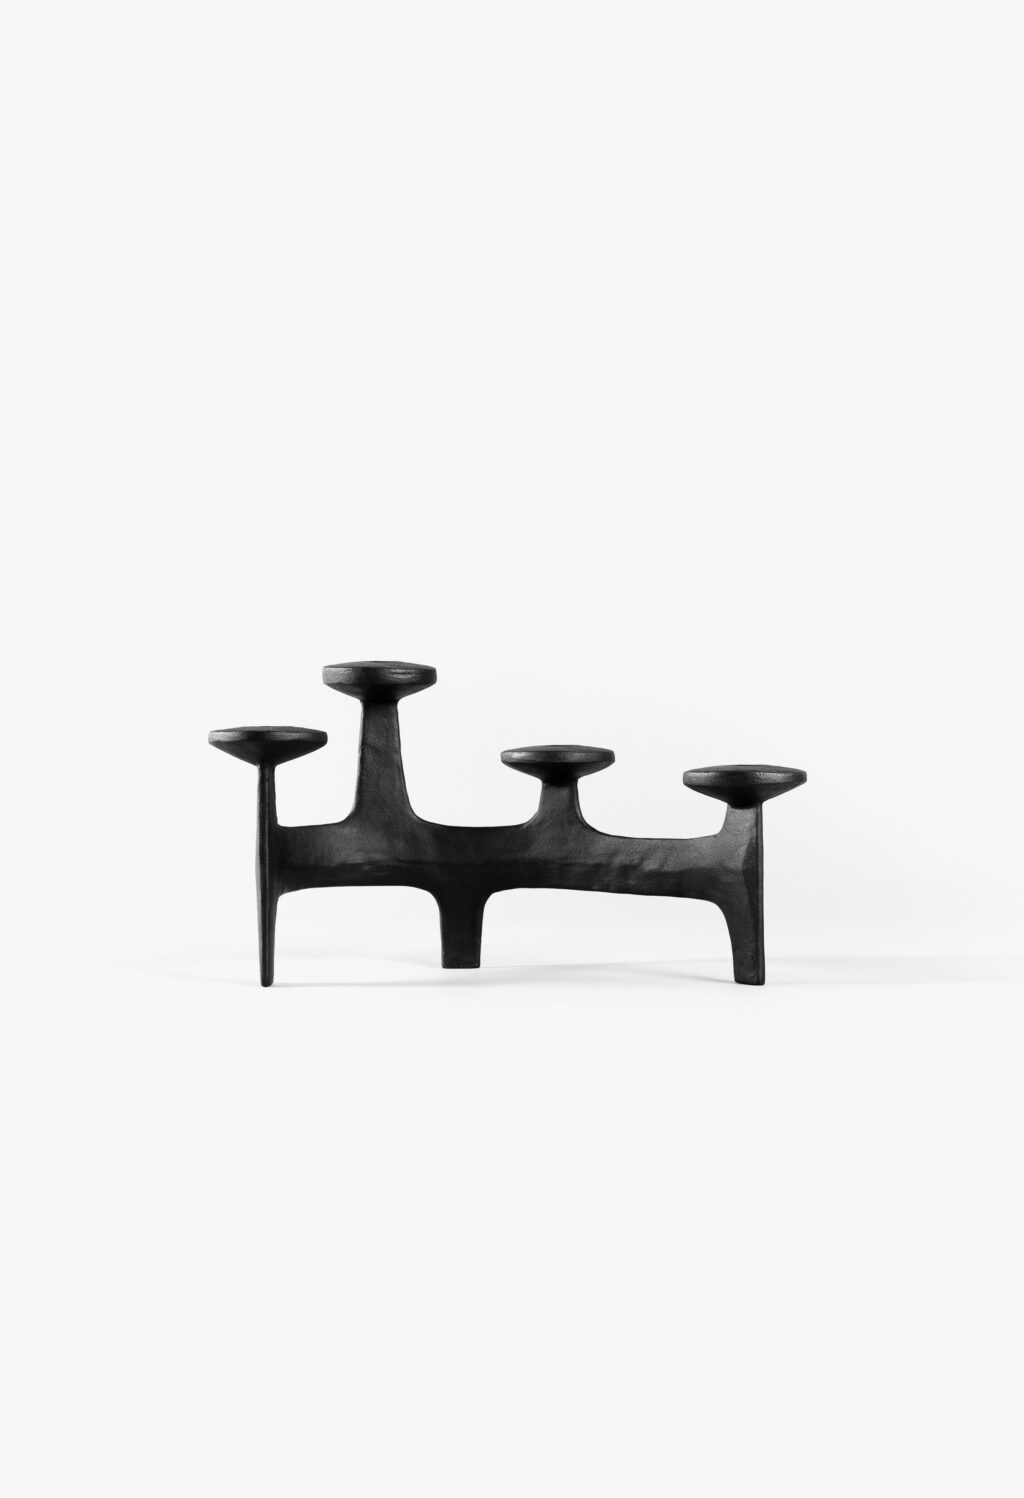 Nedre Foss - Nunatak - Candelabra - by Anderssen and Voll - cast iron